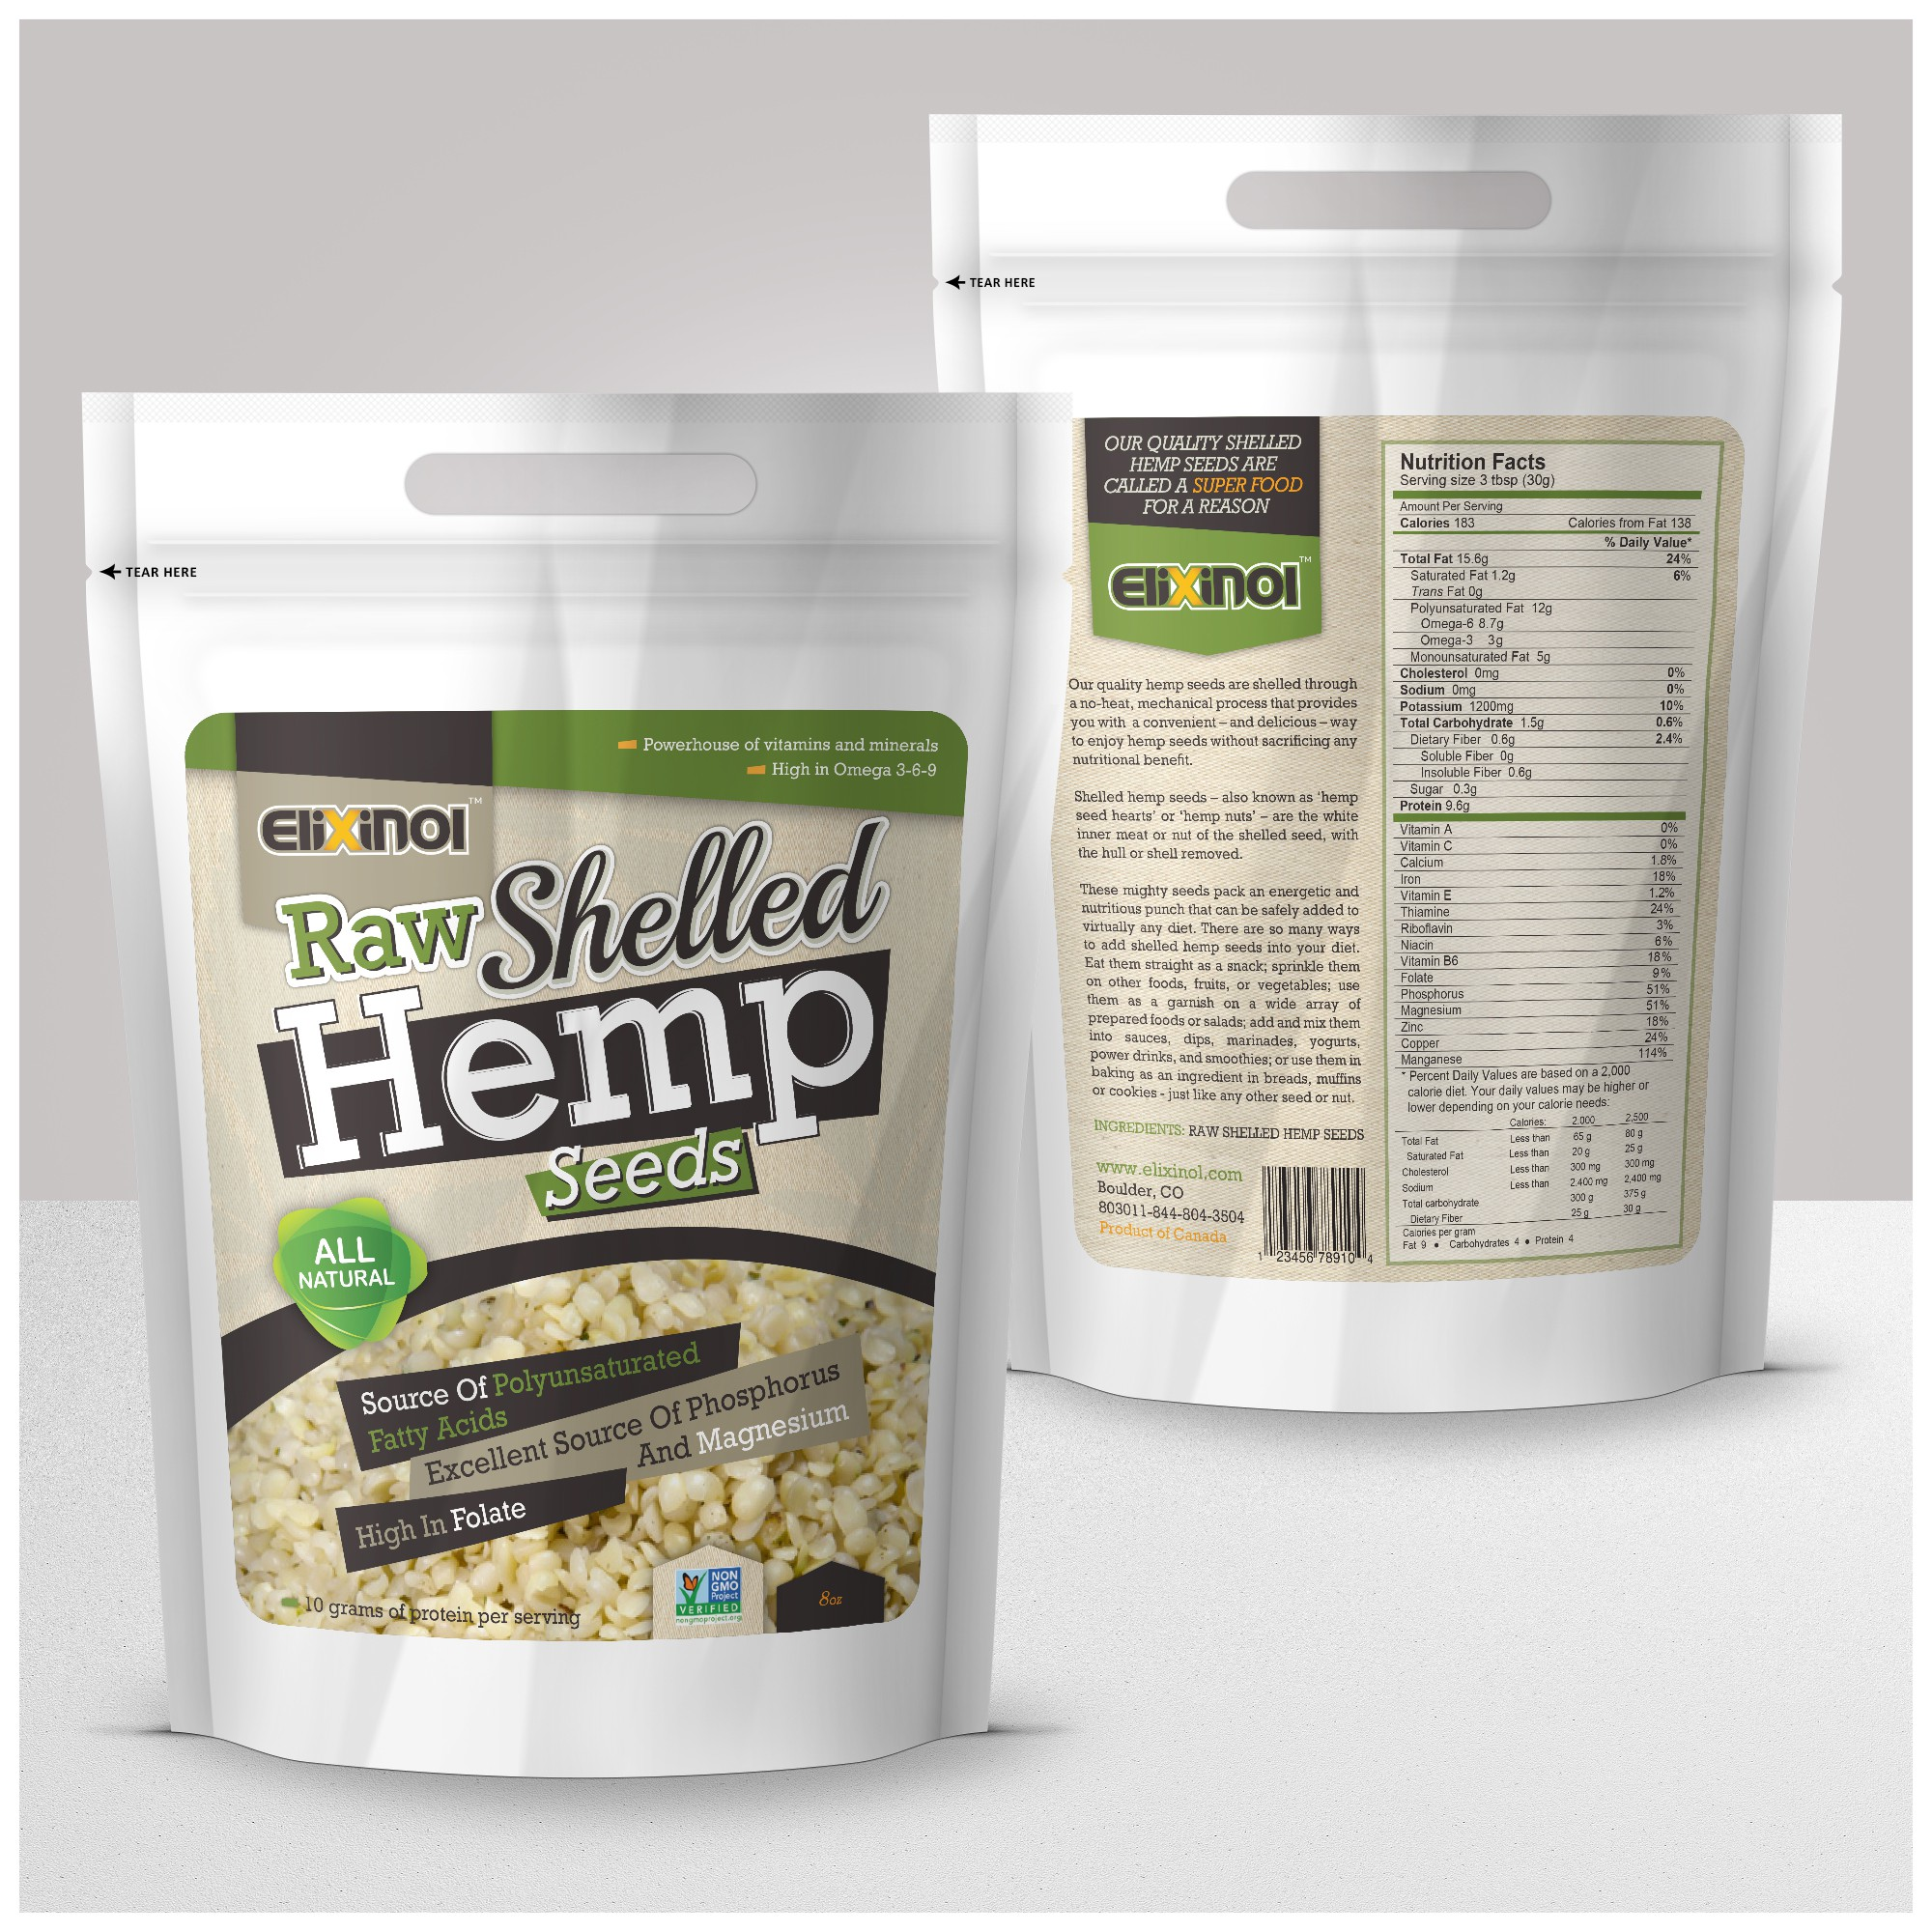 Hemp is the future  - design for an up and coming company with expansion underway.